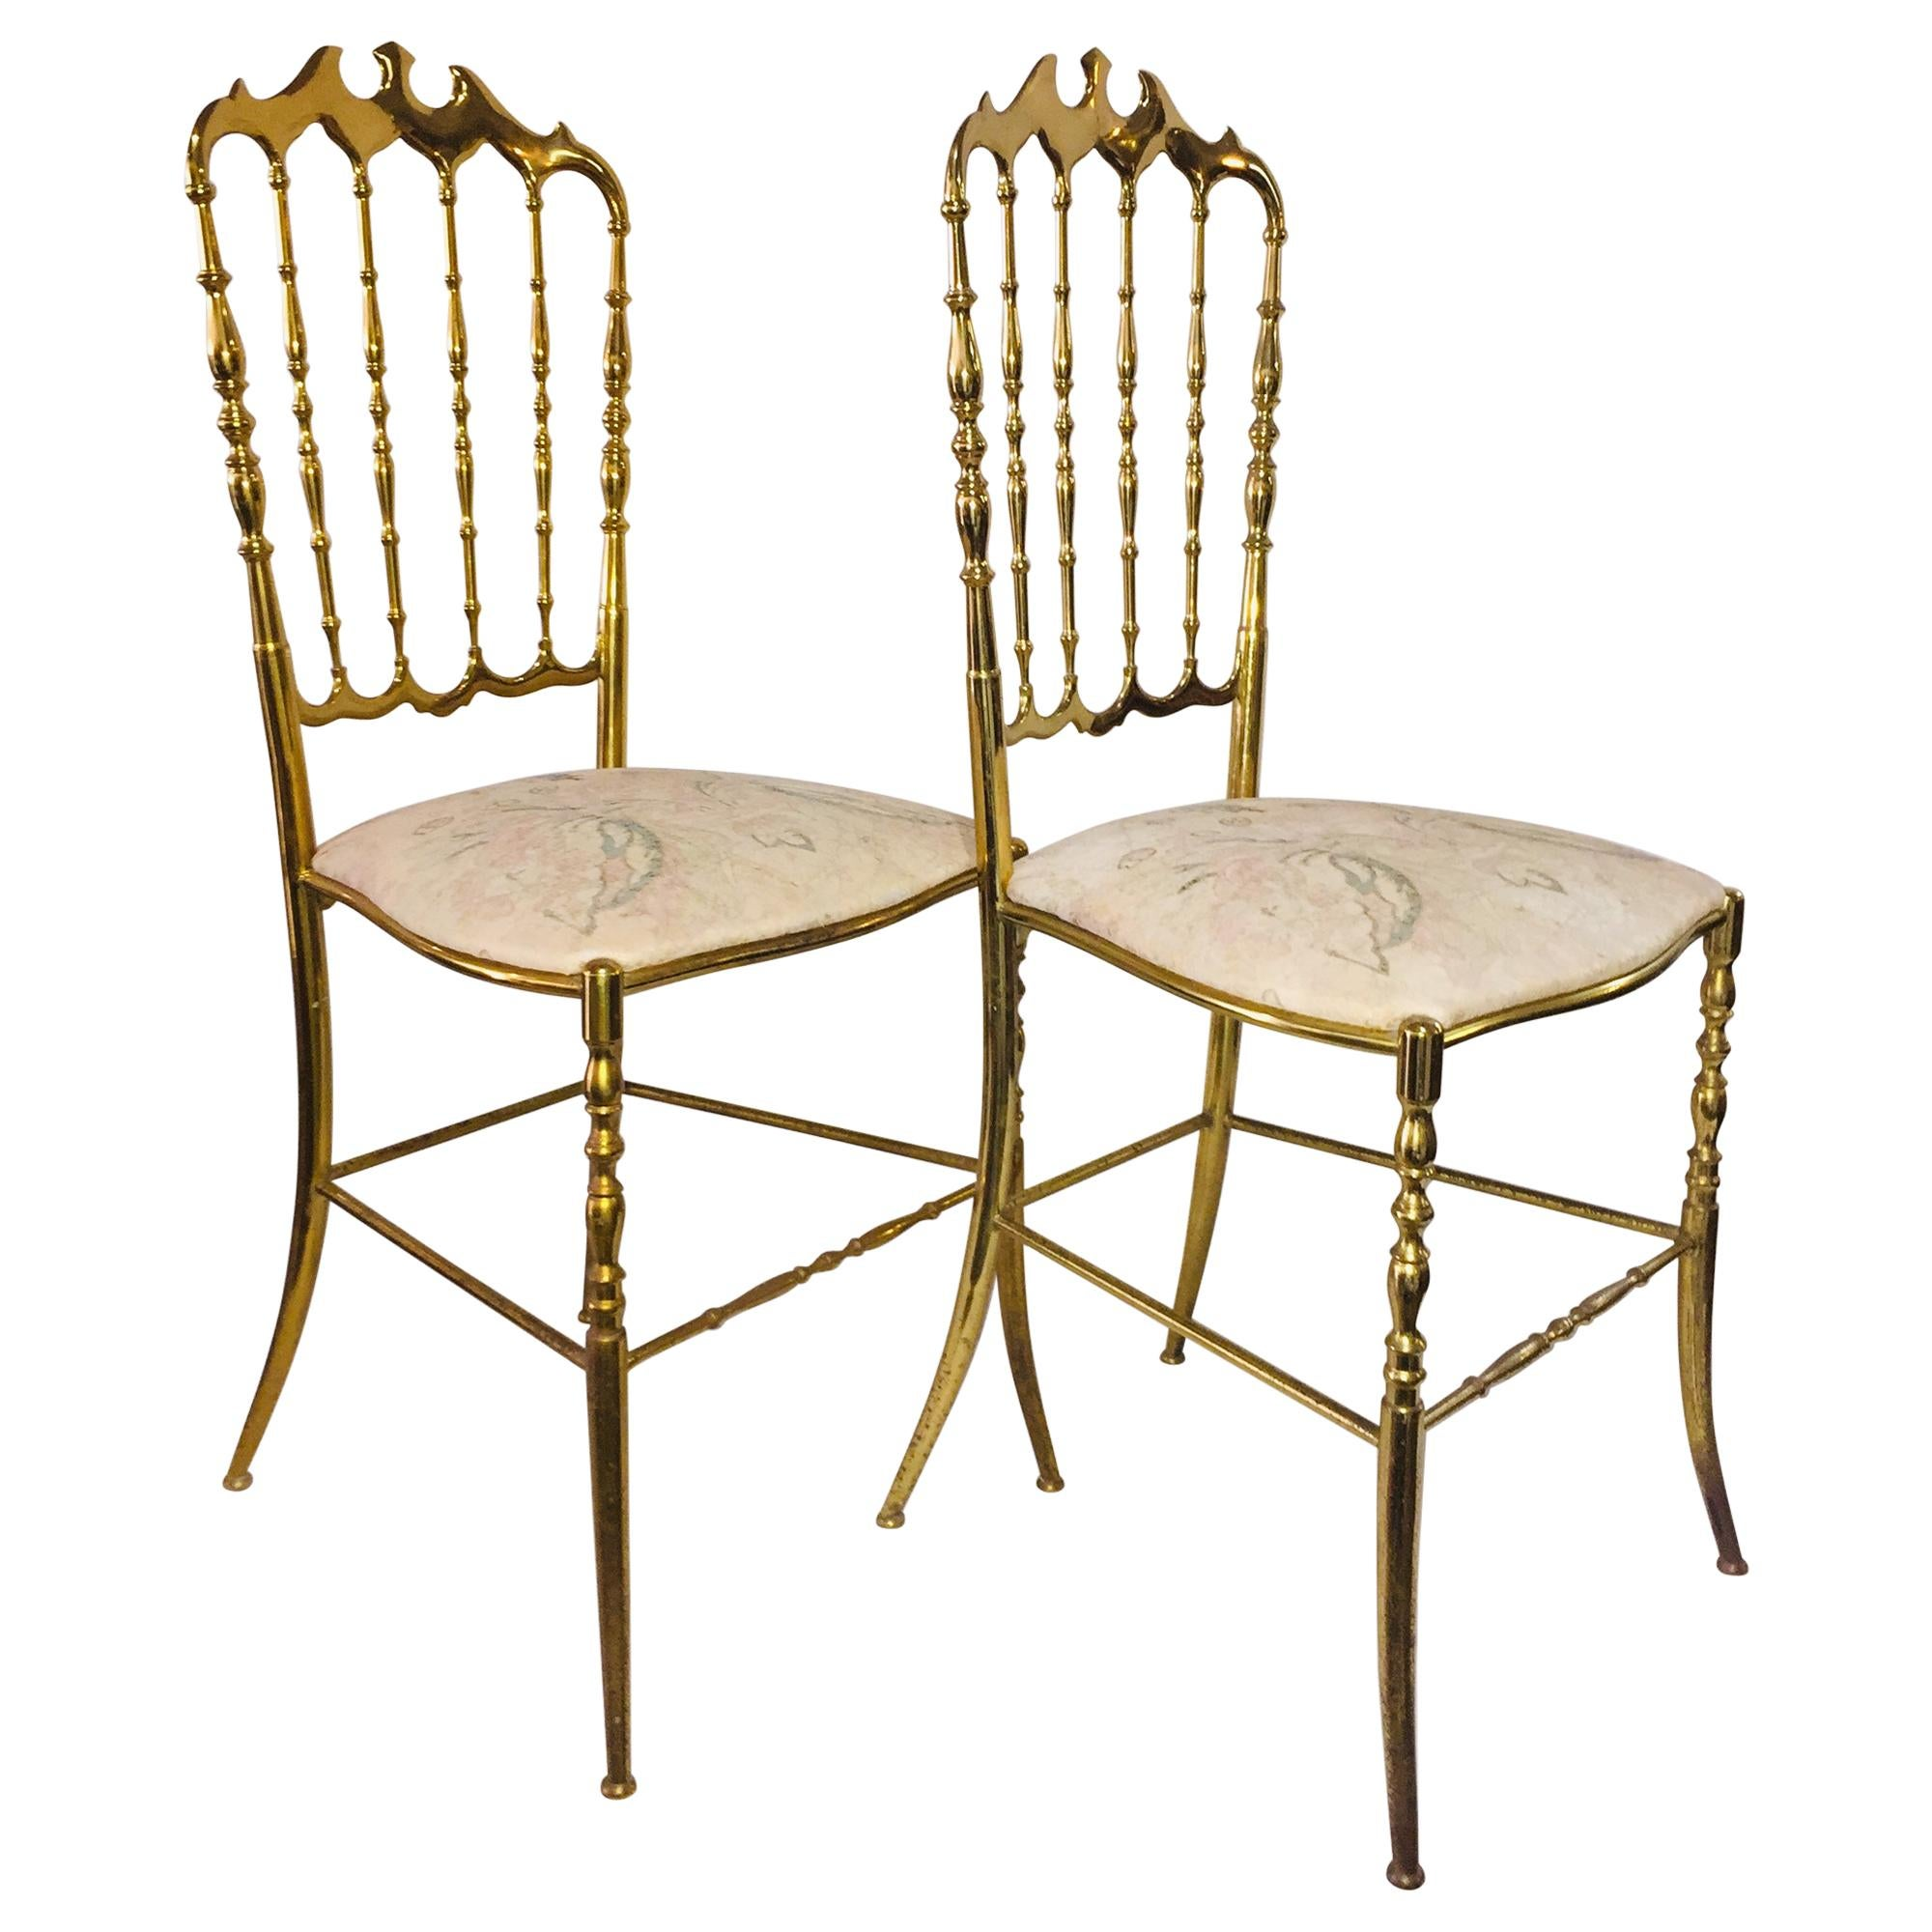 Mid-Century Modern Pair of Italian Chiavari Opéra Chairs in Solid Polished Brass